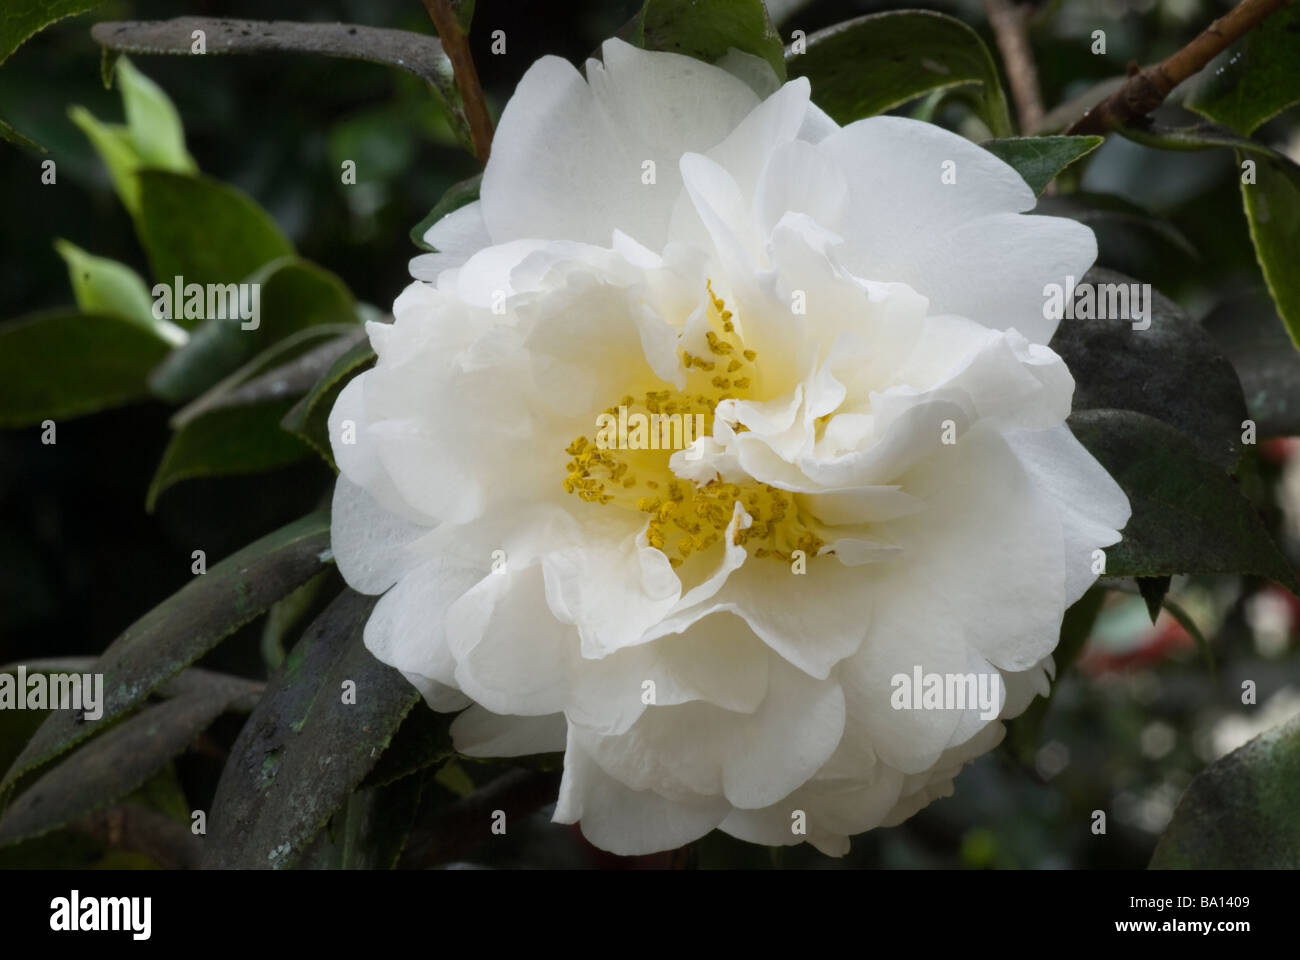 Close up of a white camellia flower stock photo 23382025 alamy close up of a white camellia flower mightylinksfo